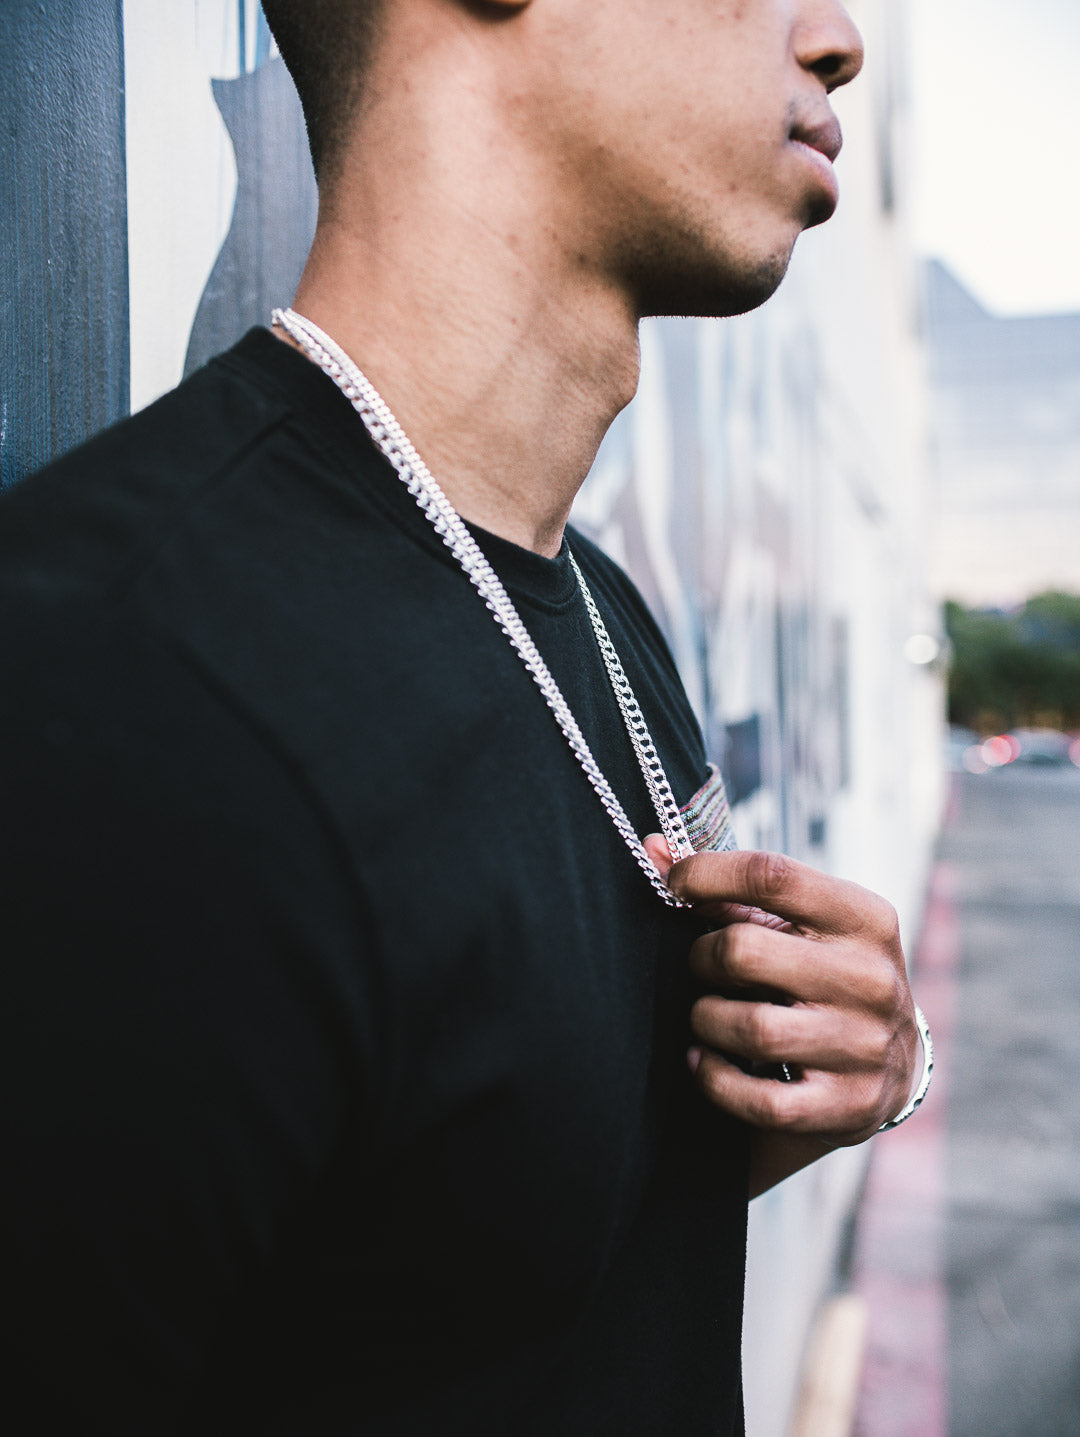 The W Brothers Premium Grade A 925 Sterling Silver S-Link Cuban chain fits all styles for men and women streetwear modern fashion chains. This look is perfect with any pendant or on its own. Sterling Silver Cuban Chain 24""